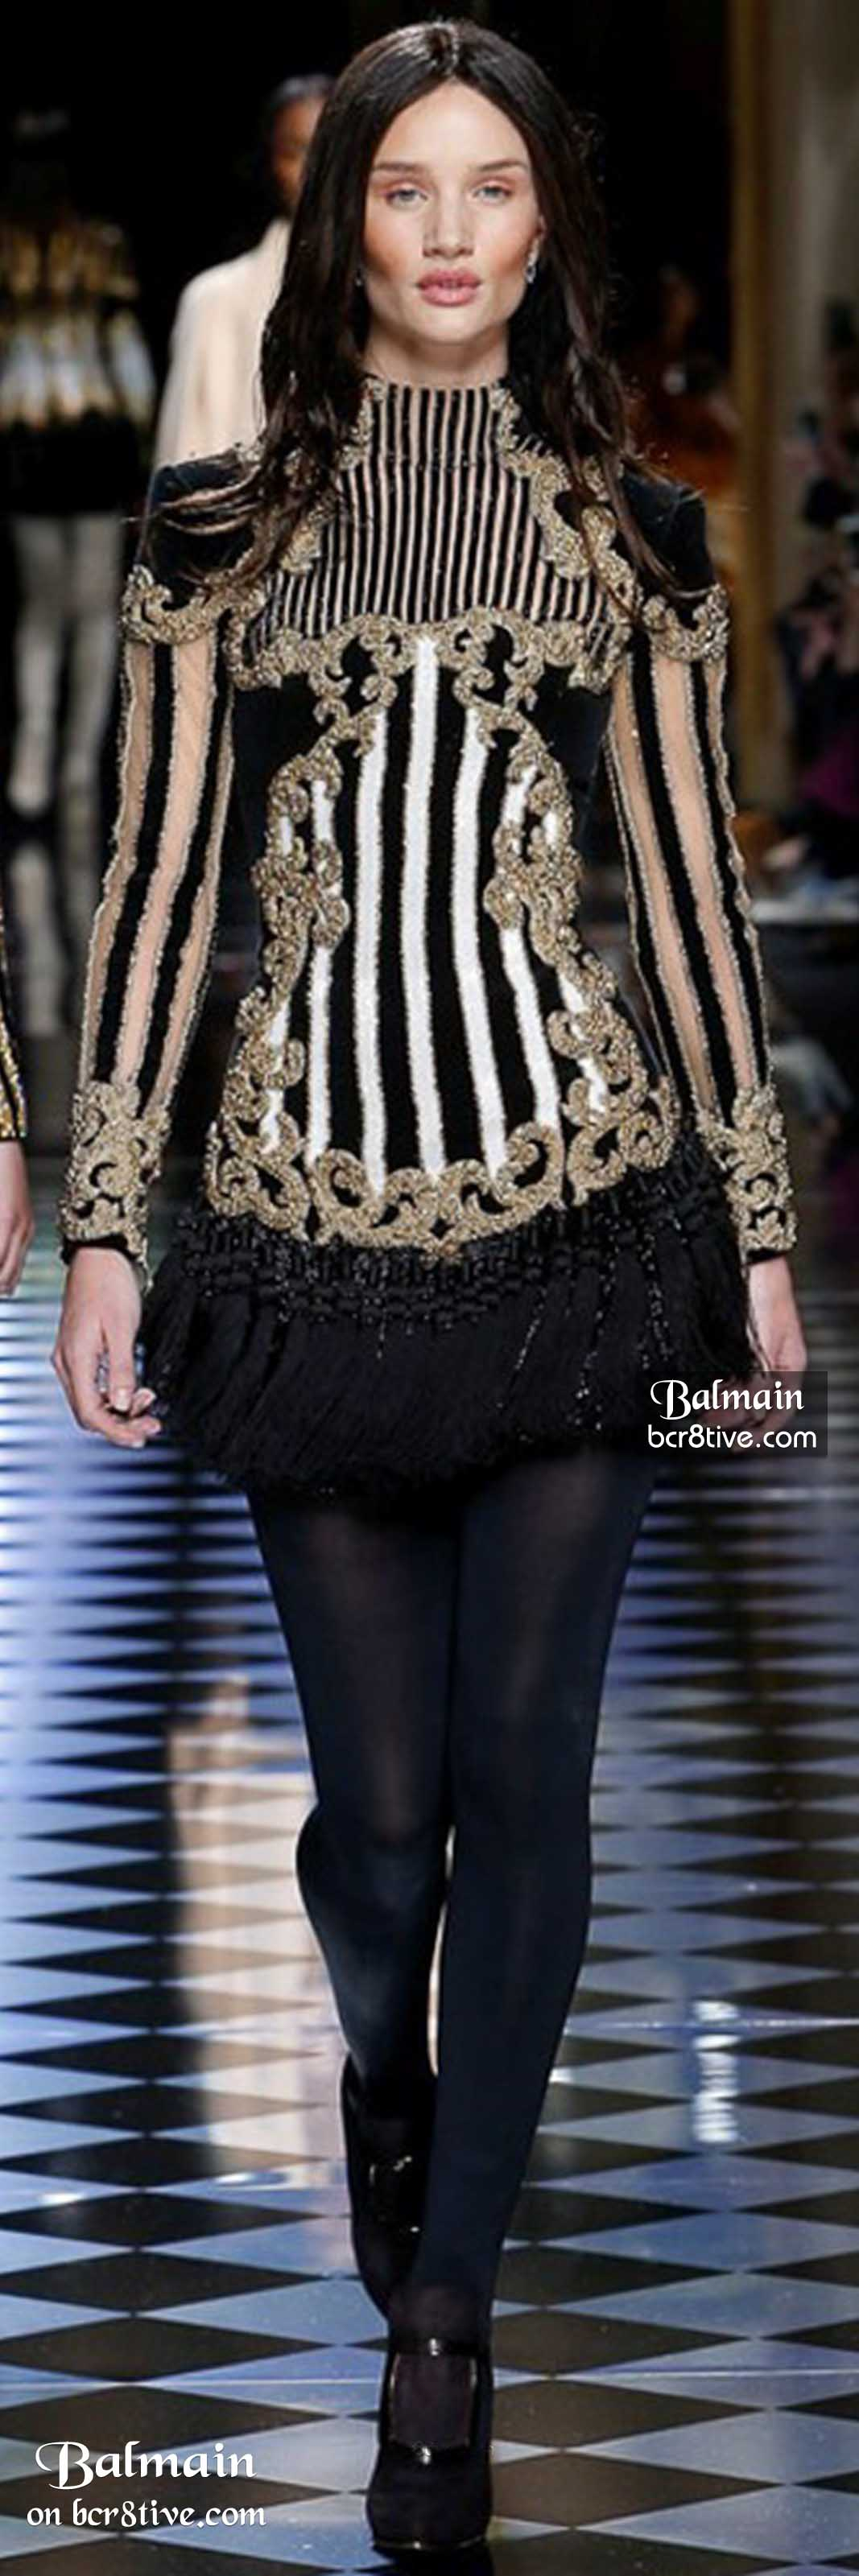 Balmain Fall 2016 Top Trendsetting Designs